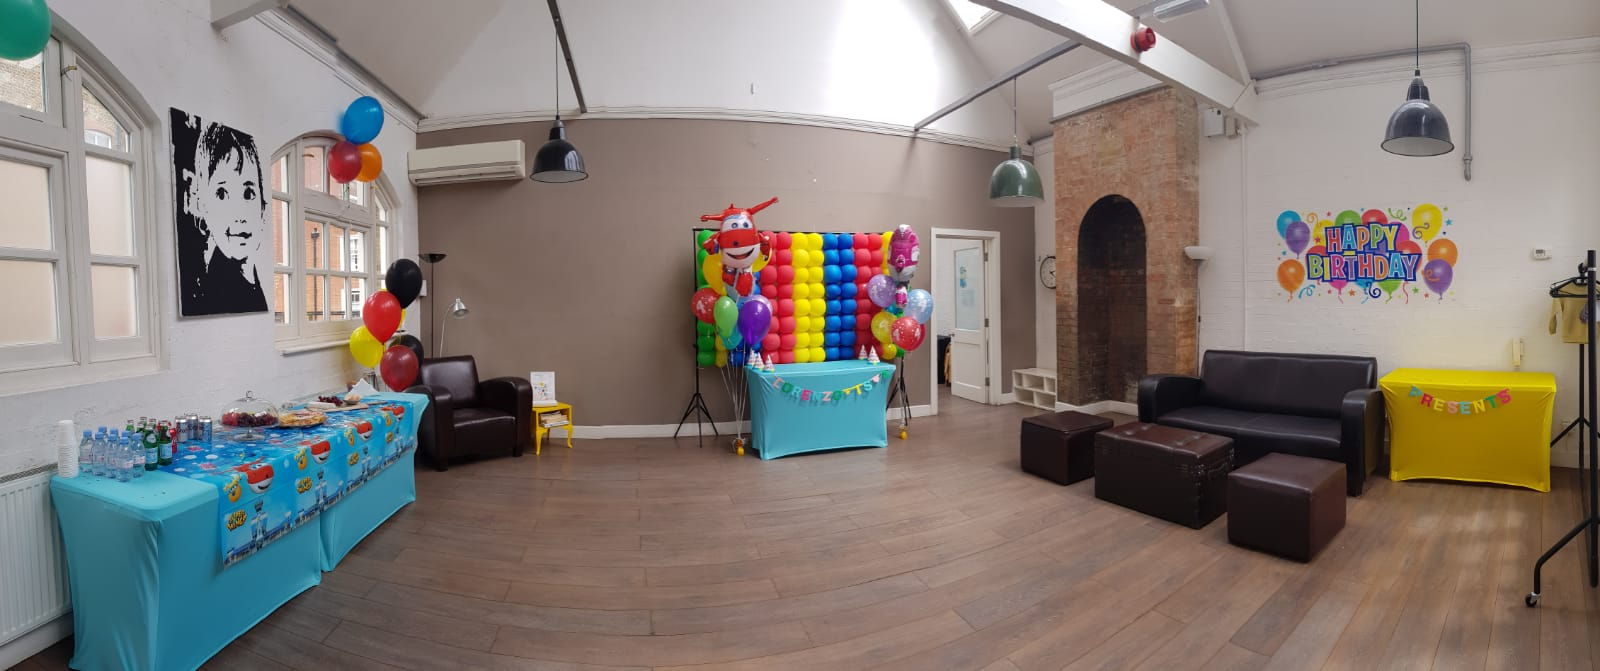 Upstairs decorated 1st room at 3 House Club _version2.JPG